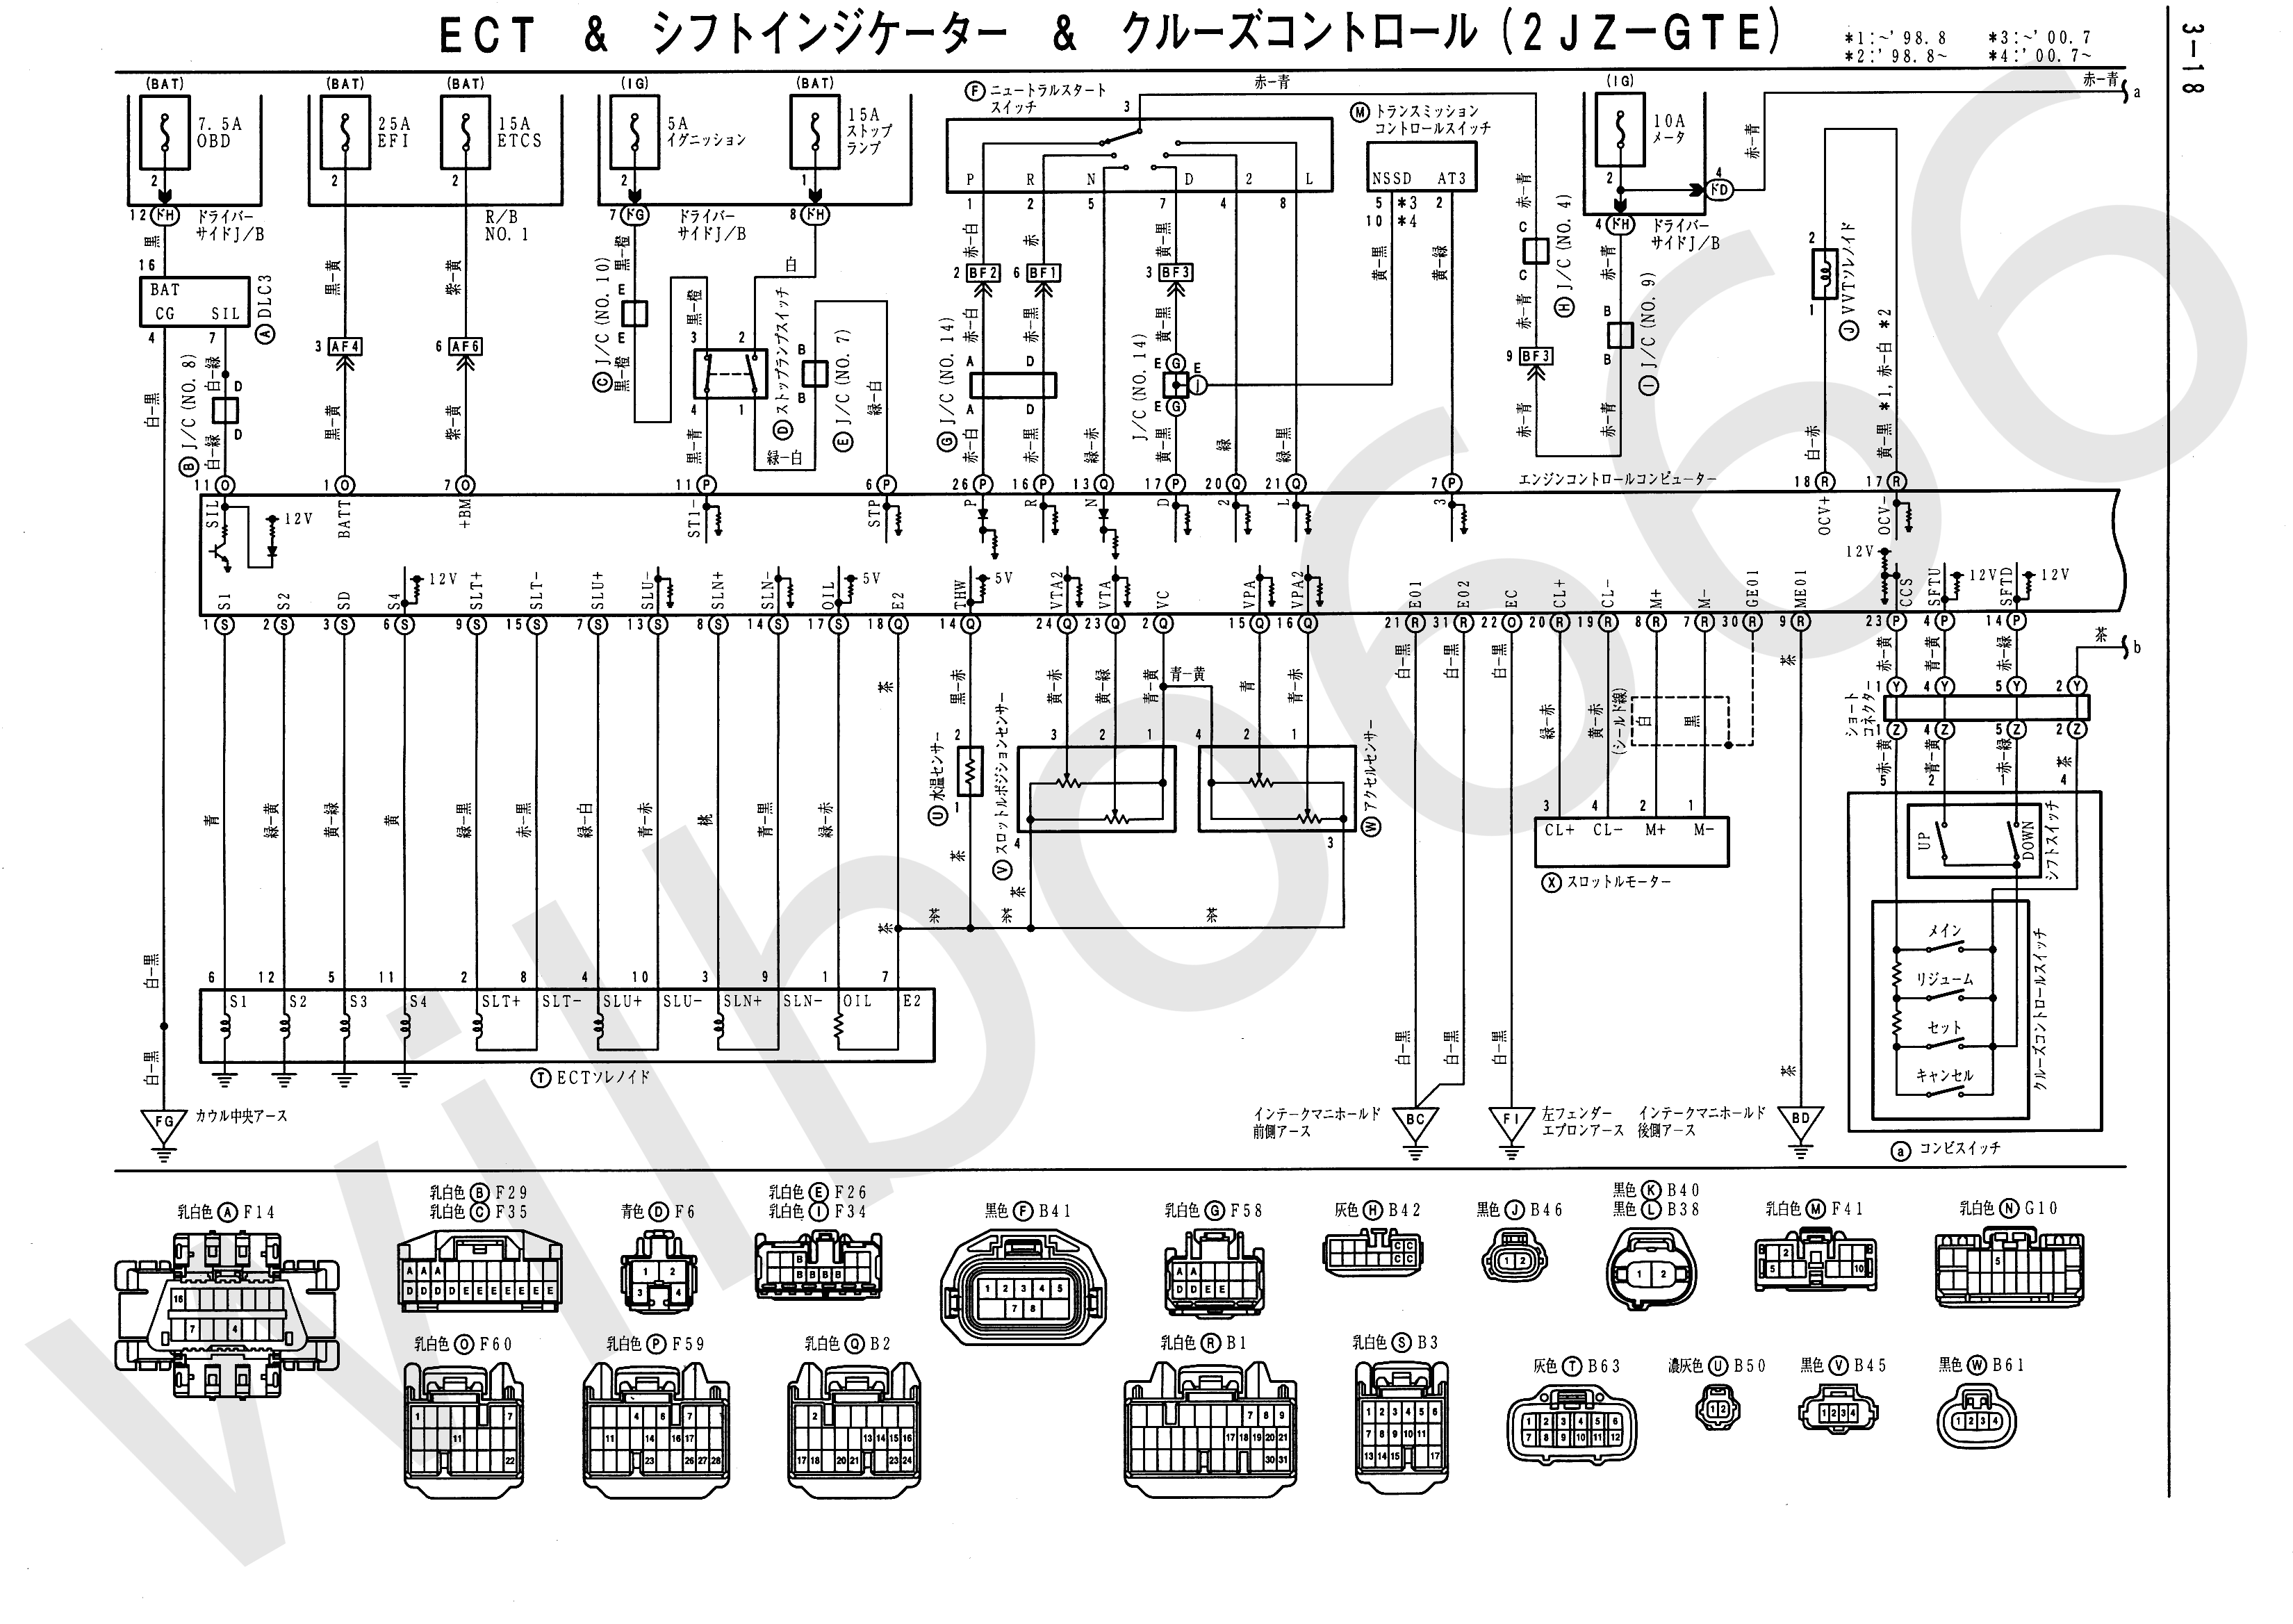 JZS161 Electrical Wiring Diagram 6748505 3 18 wilbo666 2jz gte vvti jzs161 aristo engine wiring 2jz ge wiring diagram pdf at edmiracle.co